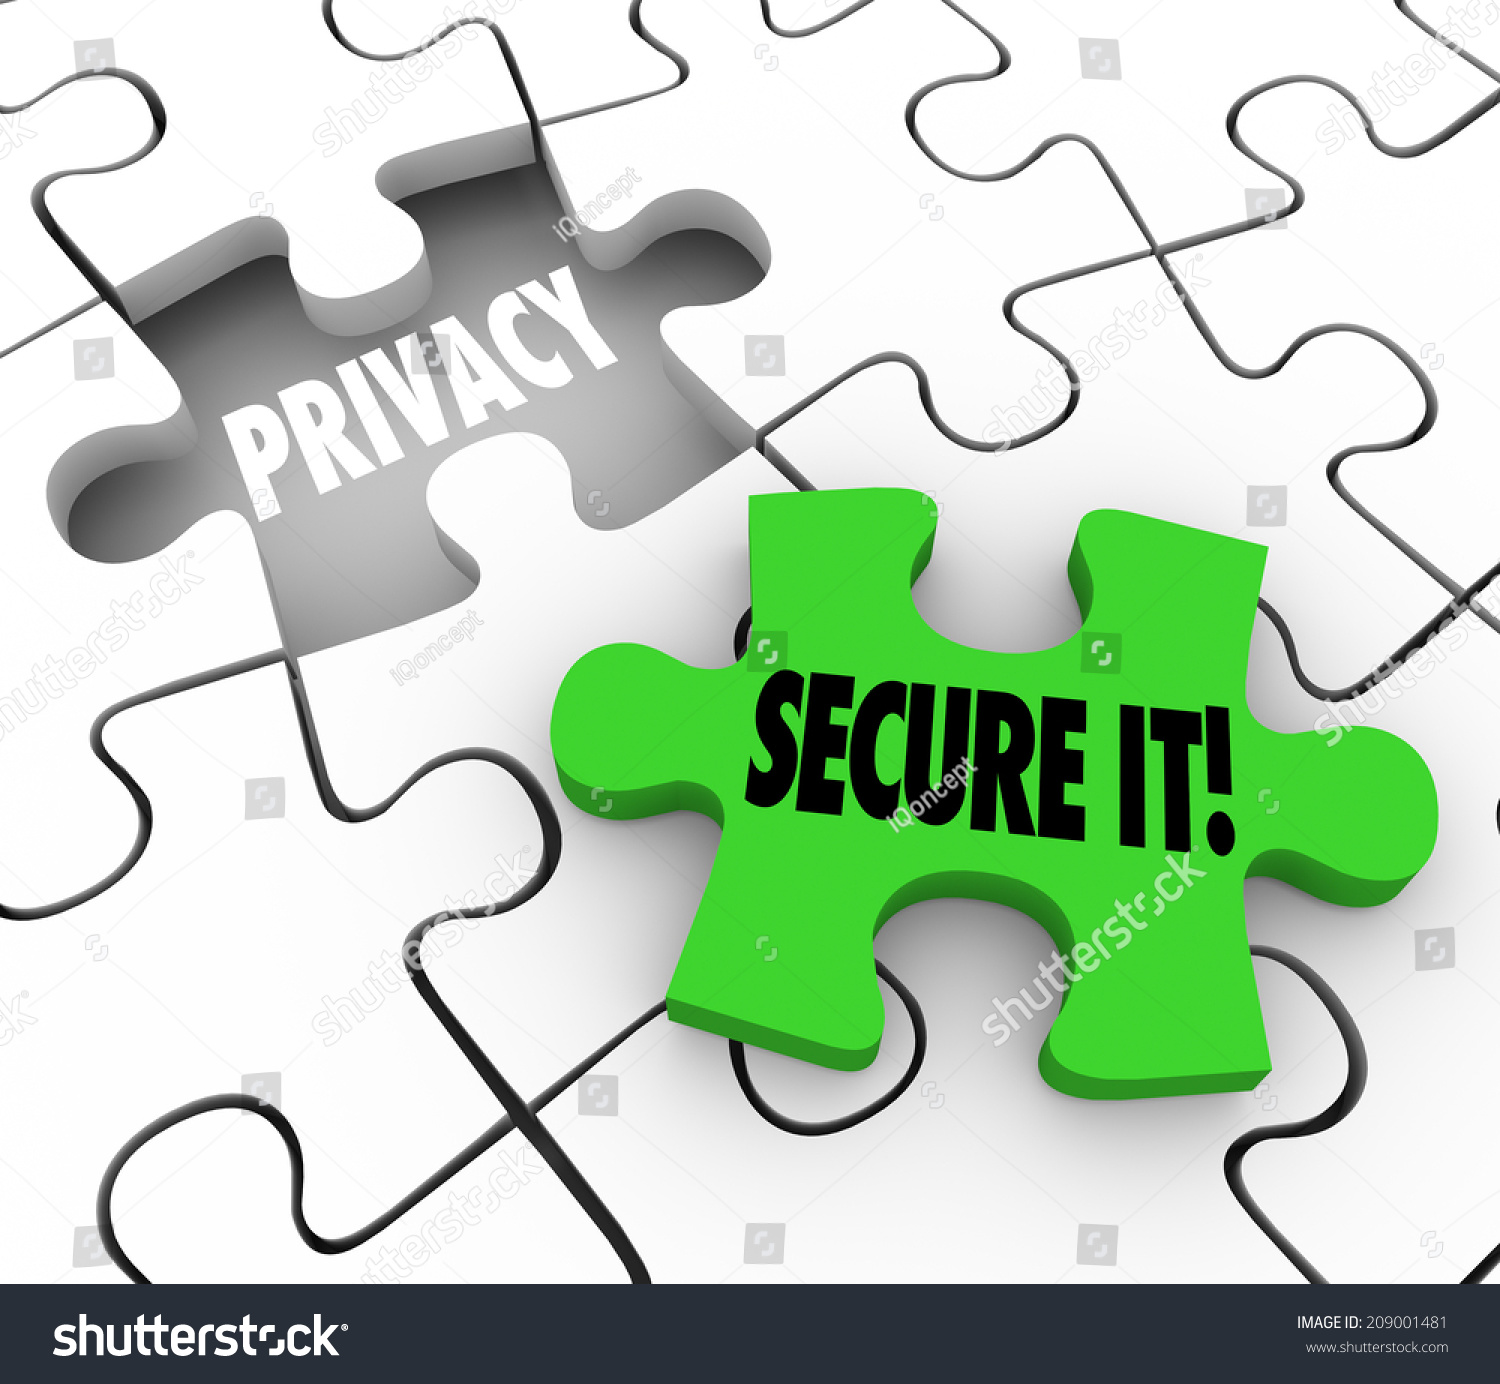 Importance of securing sensitive items